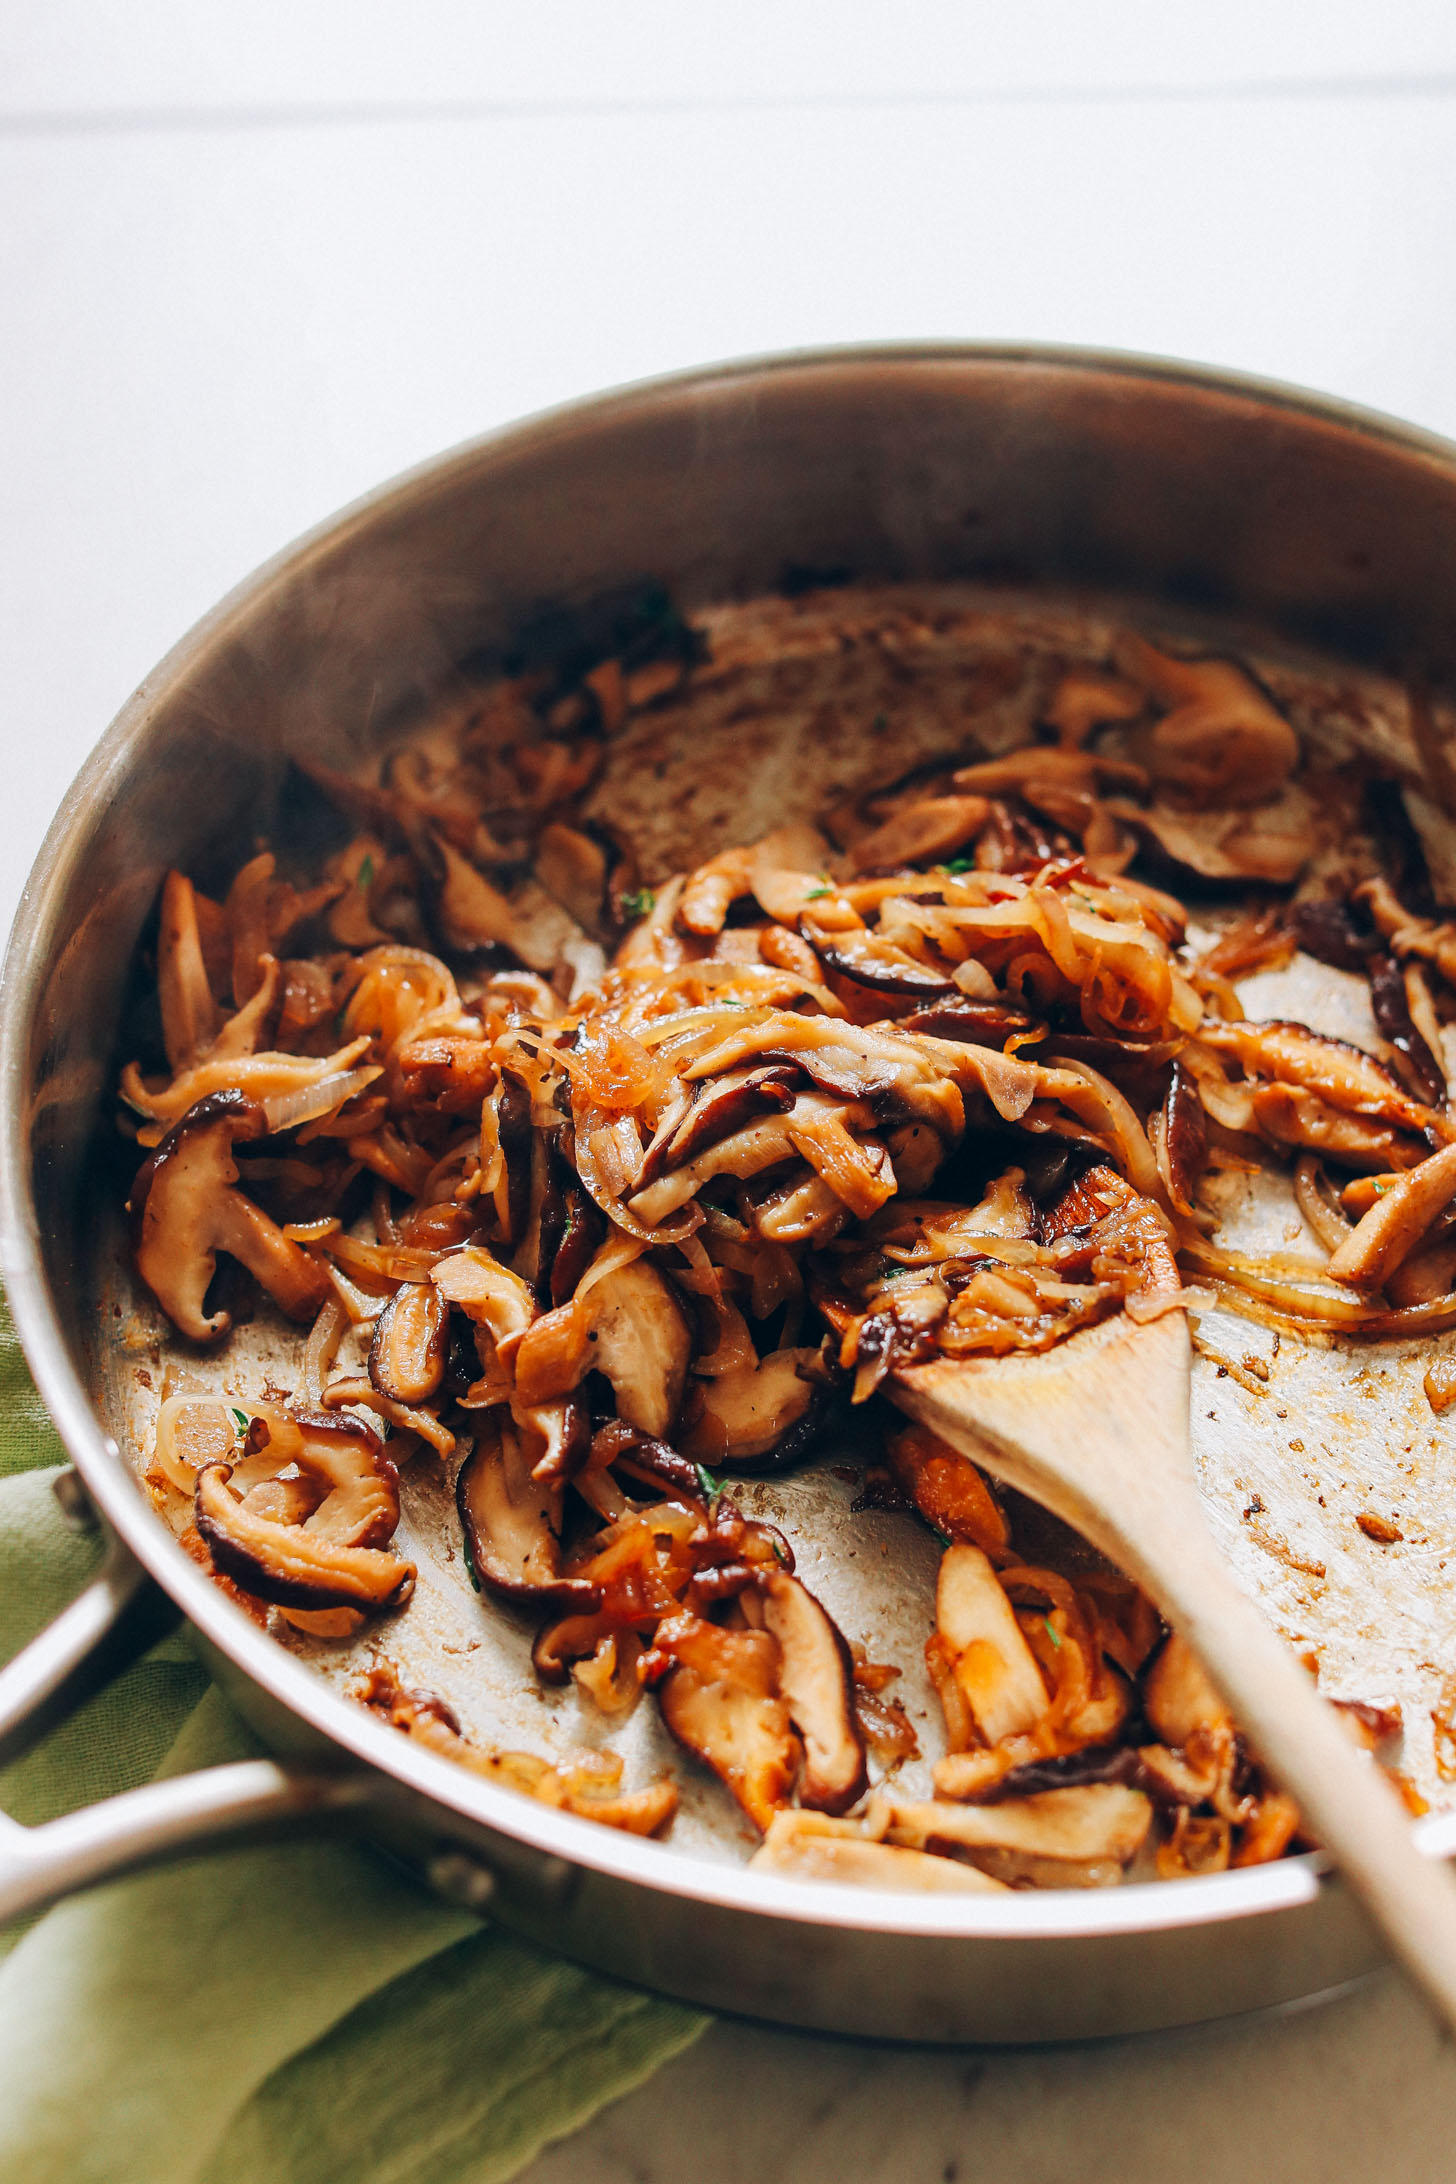 Skillet filled with Caramelized Shiitake Mushrooms and onions for homemade vegan risotto